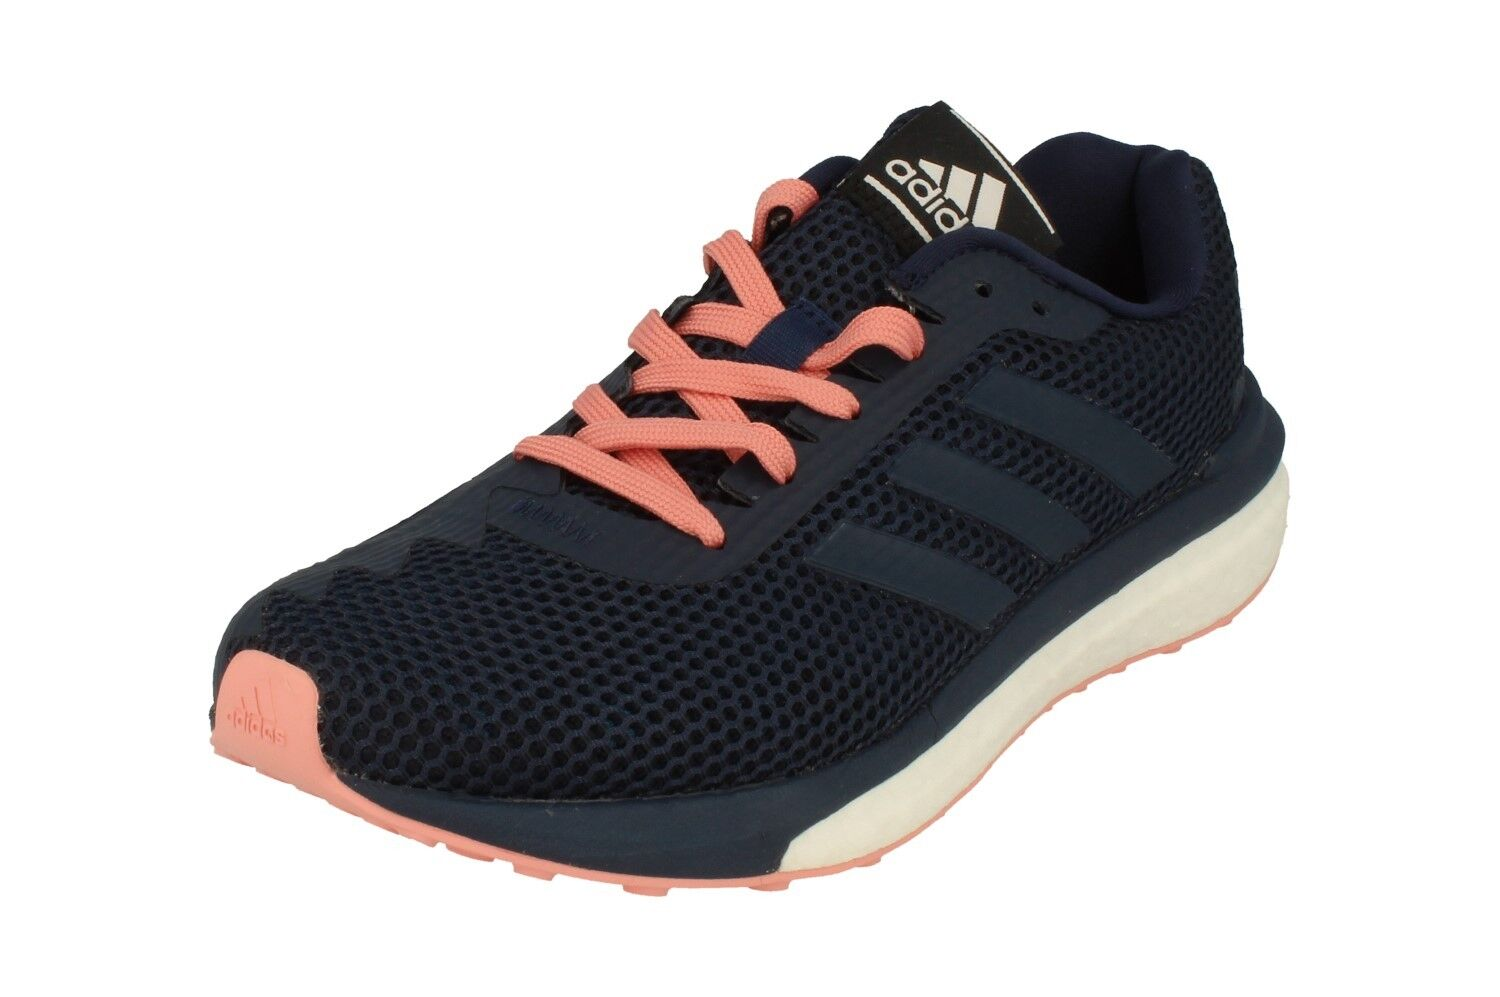 Adidas Womens Vengeful Boost Running Trainers BB1637 Sneakers shoes